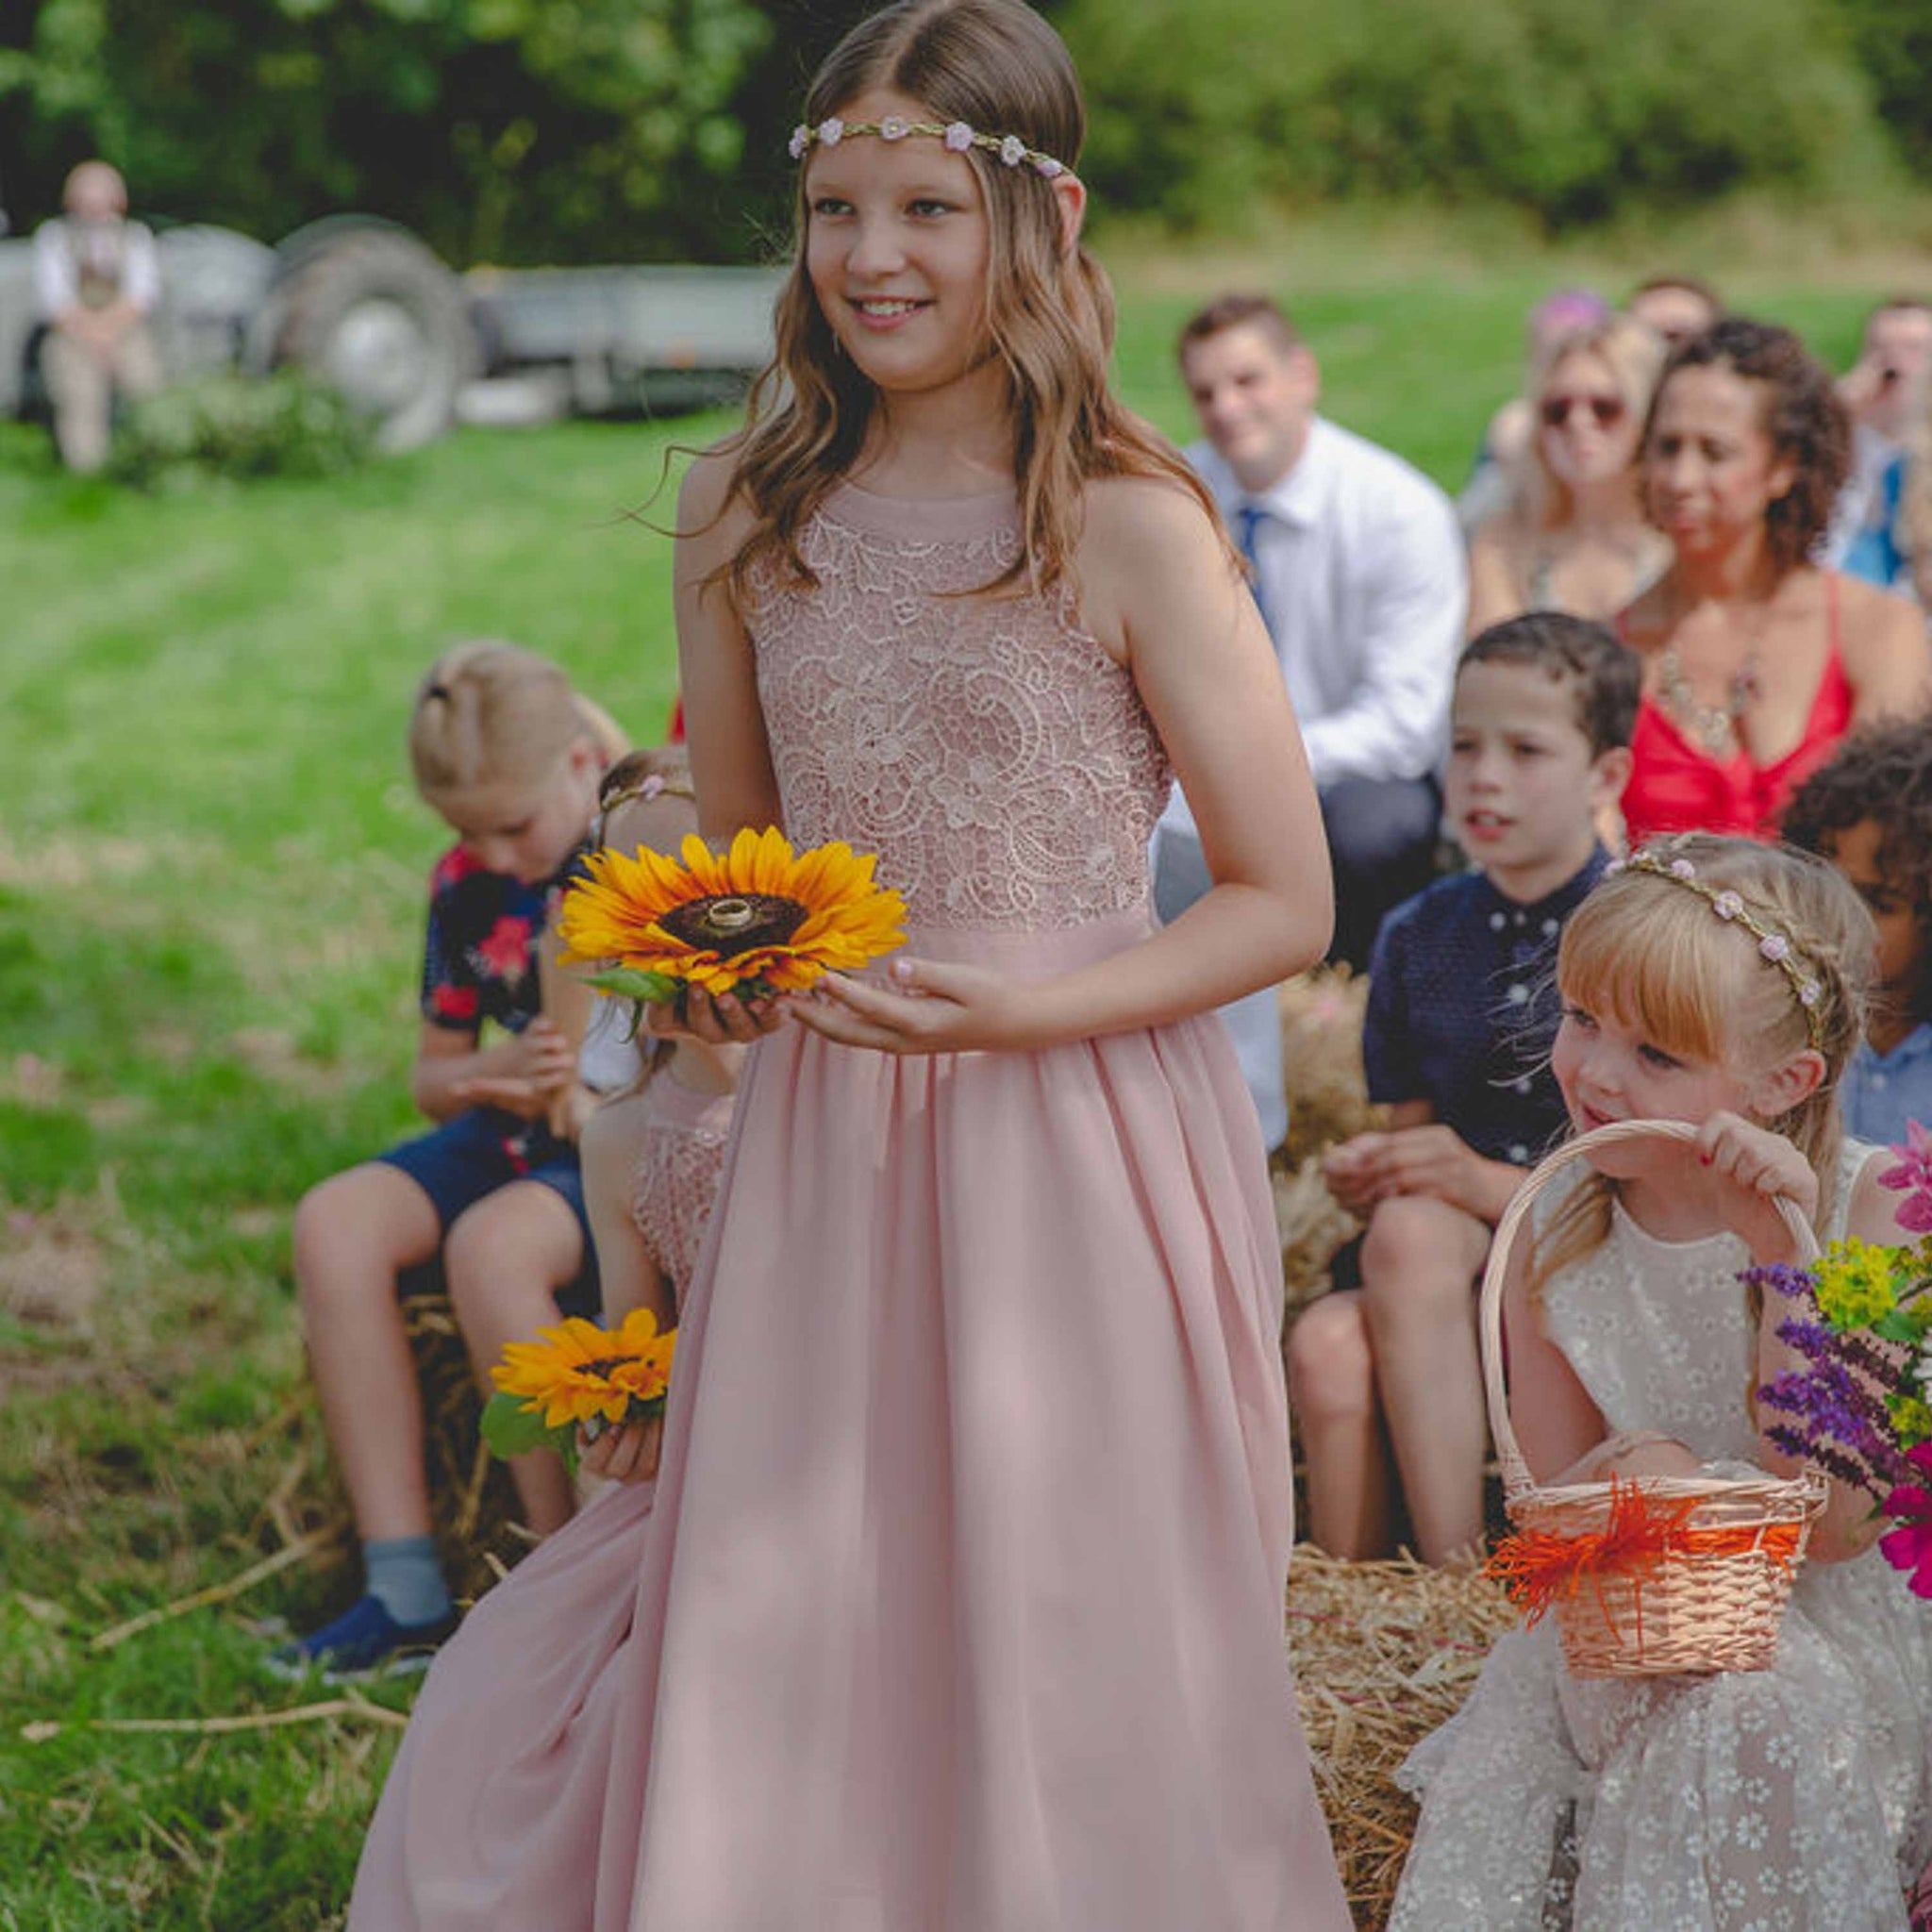 bridesmaids wearing pink dresses in outdoor wedding carrying rings on a sunflower